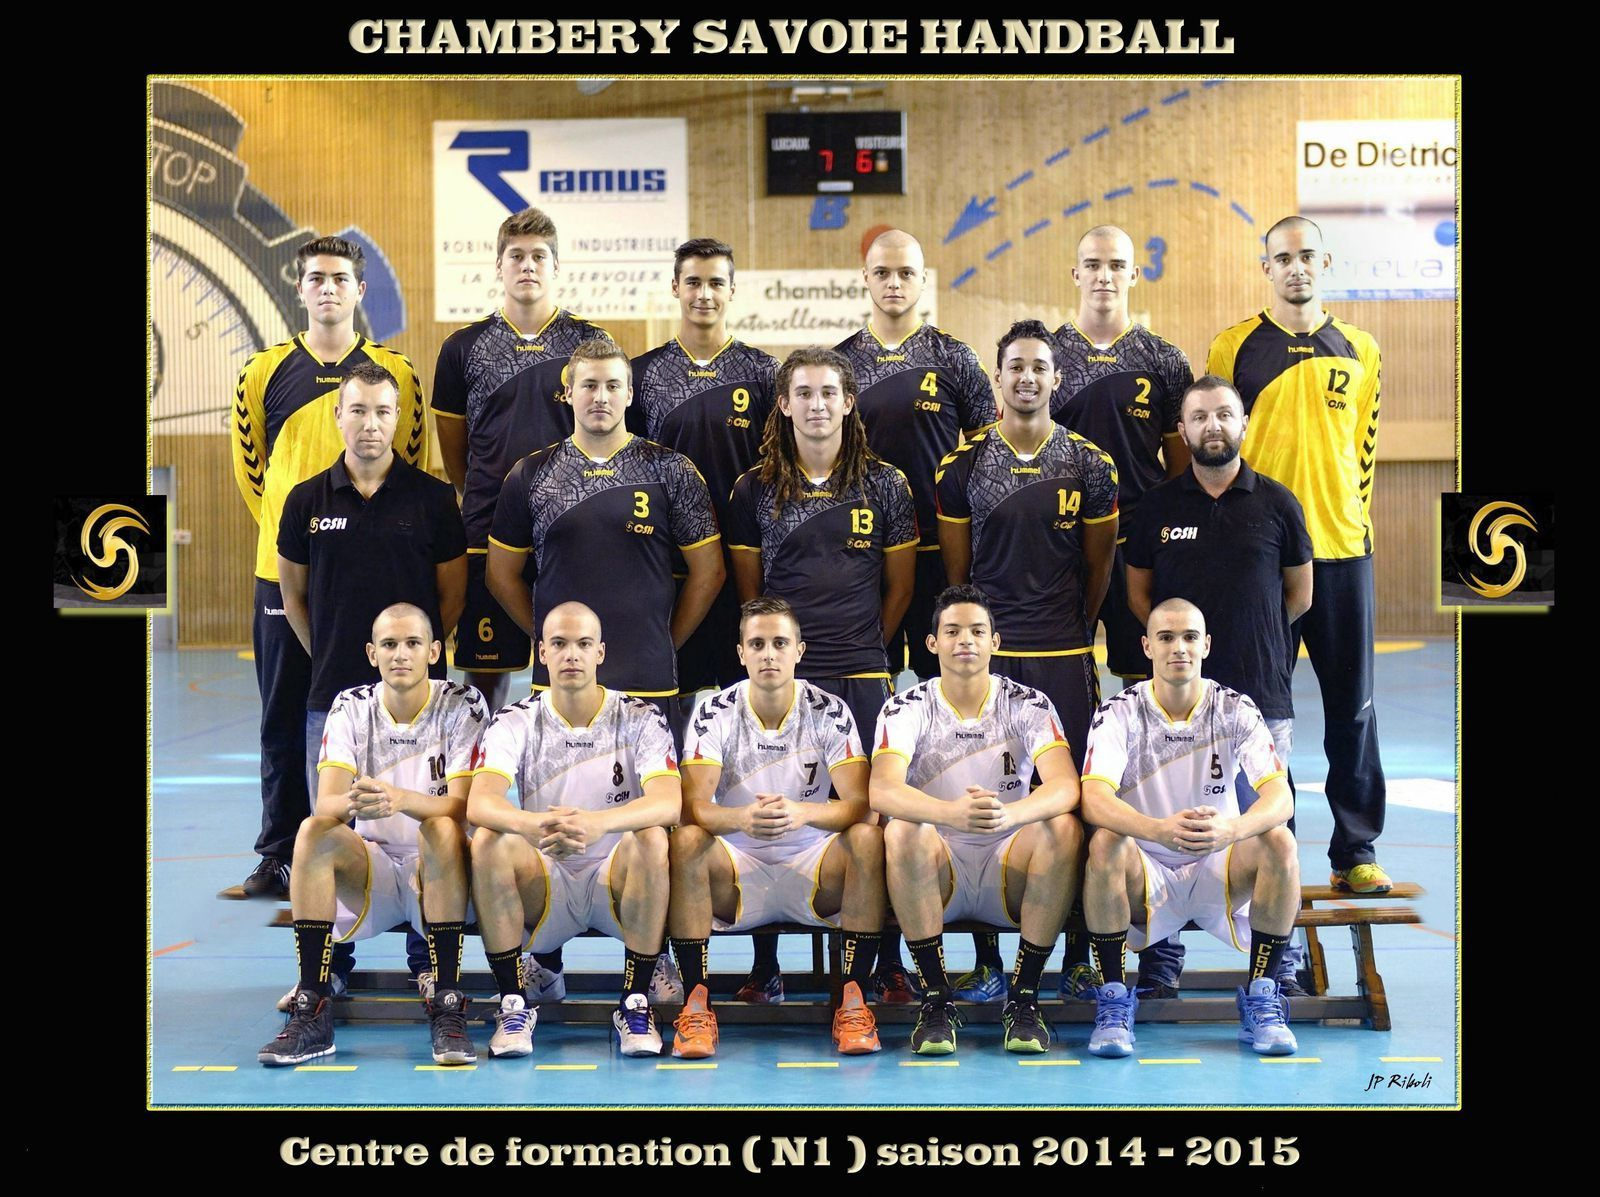 Direction le val d'Oise pour CHAMBERY2 samedi 14